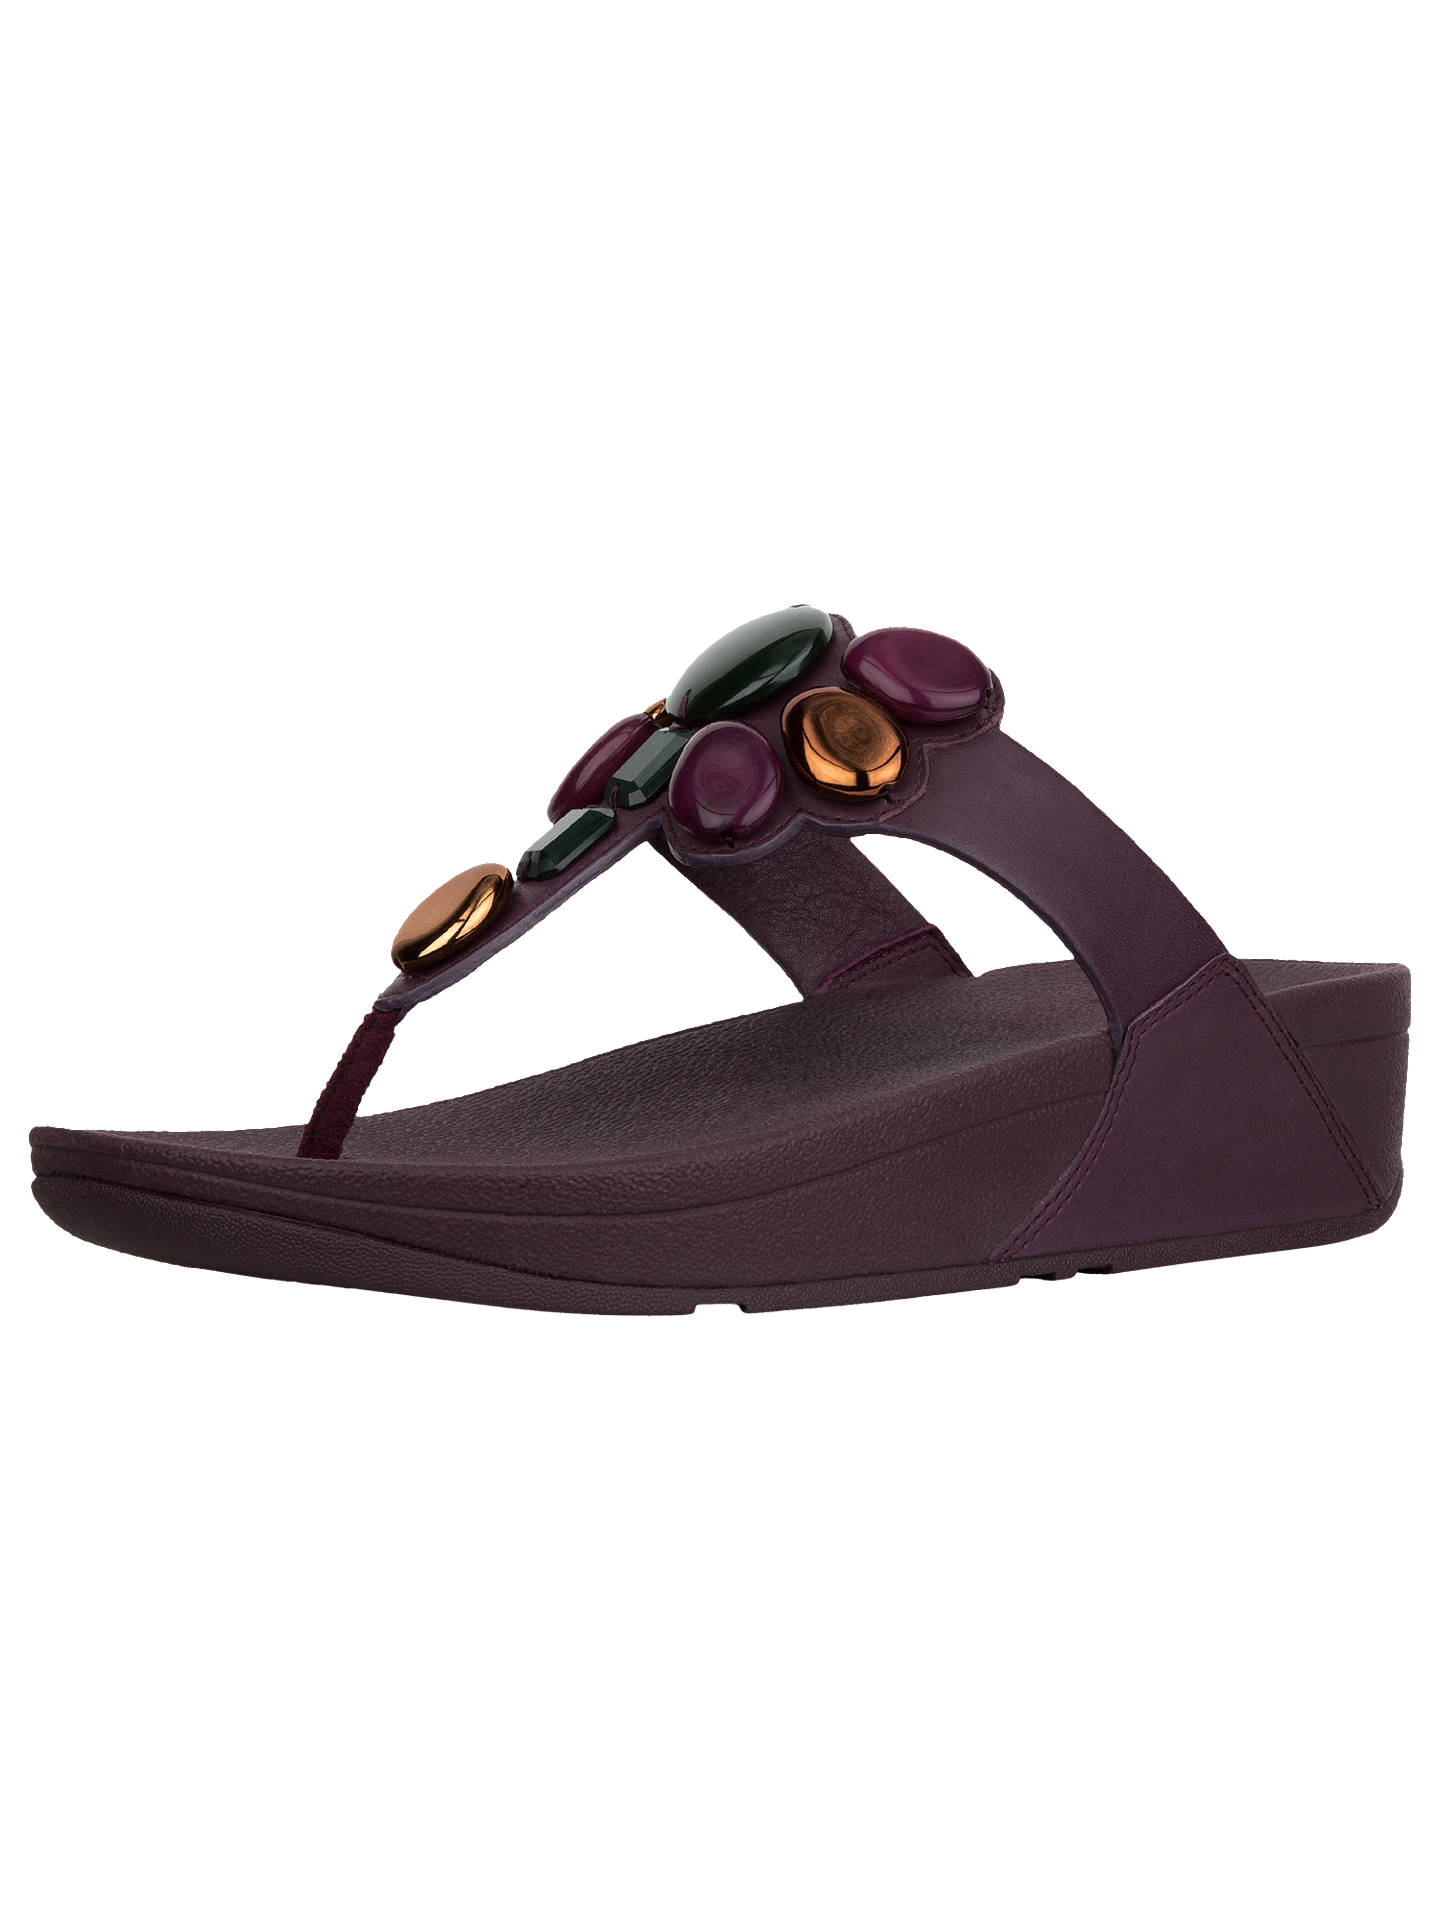 8e3dbe67704 Buy FitFlop Honeybee Jewelled Toe Post Sandals